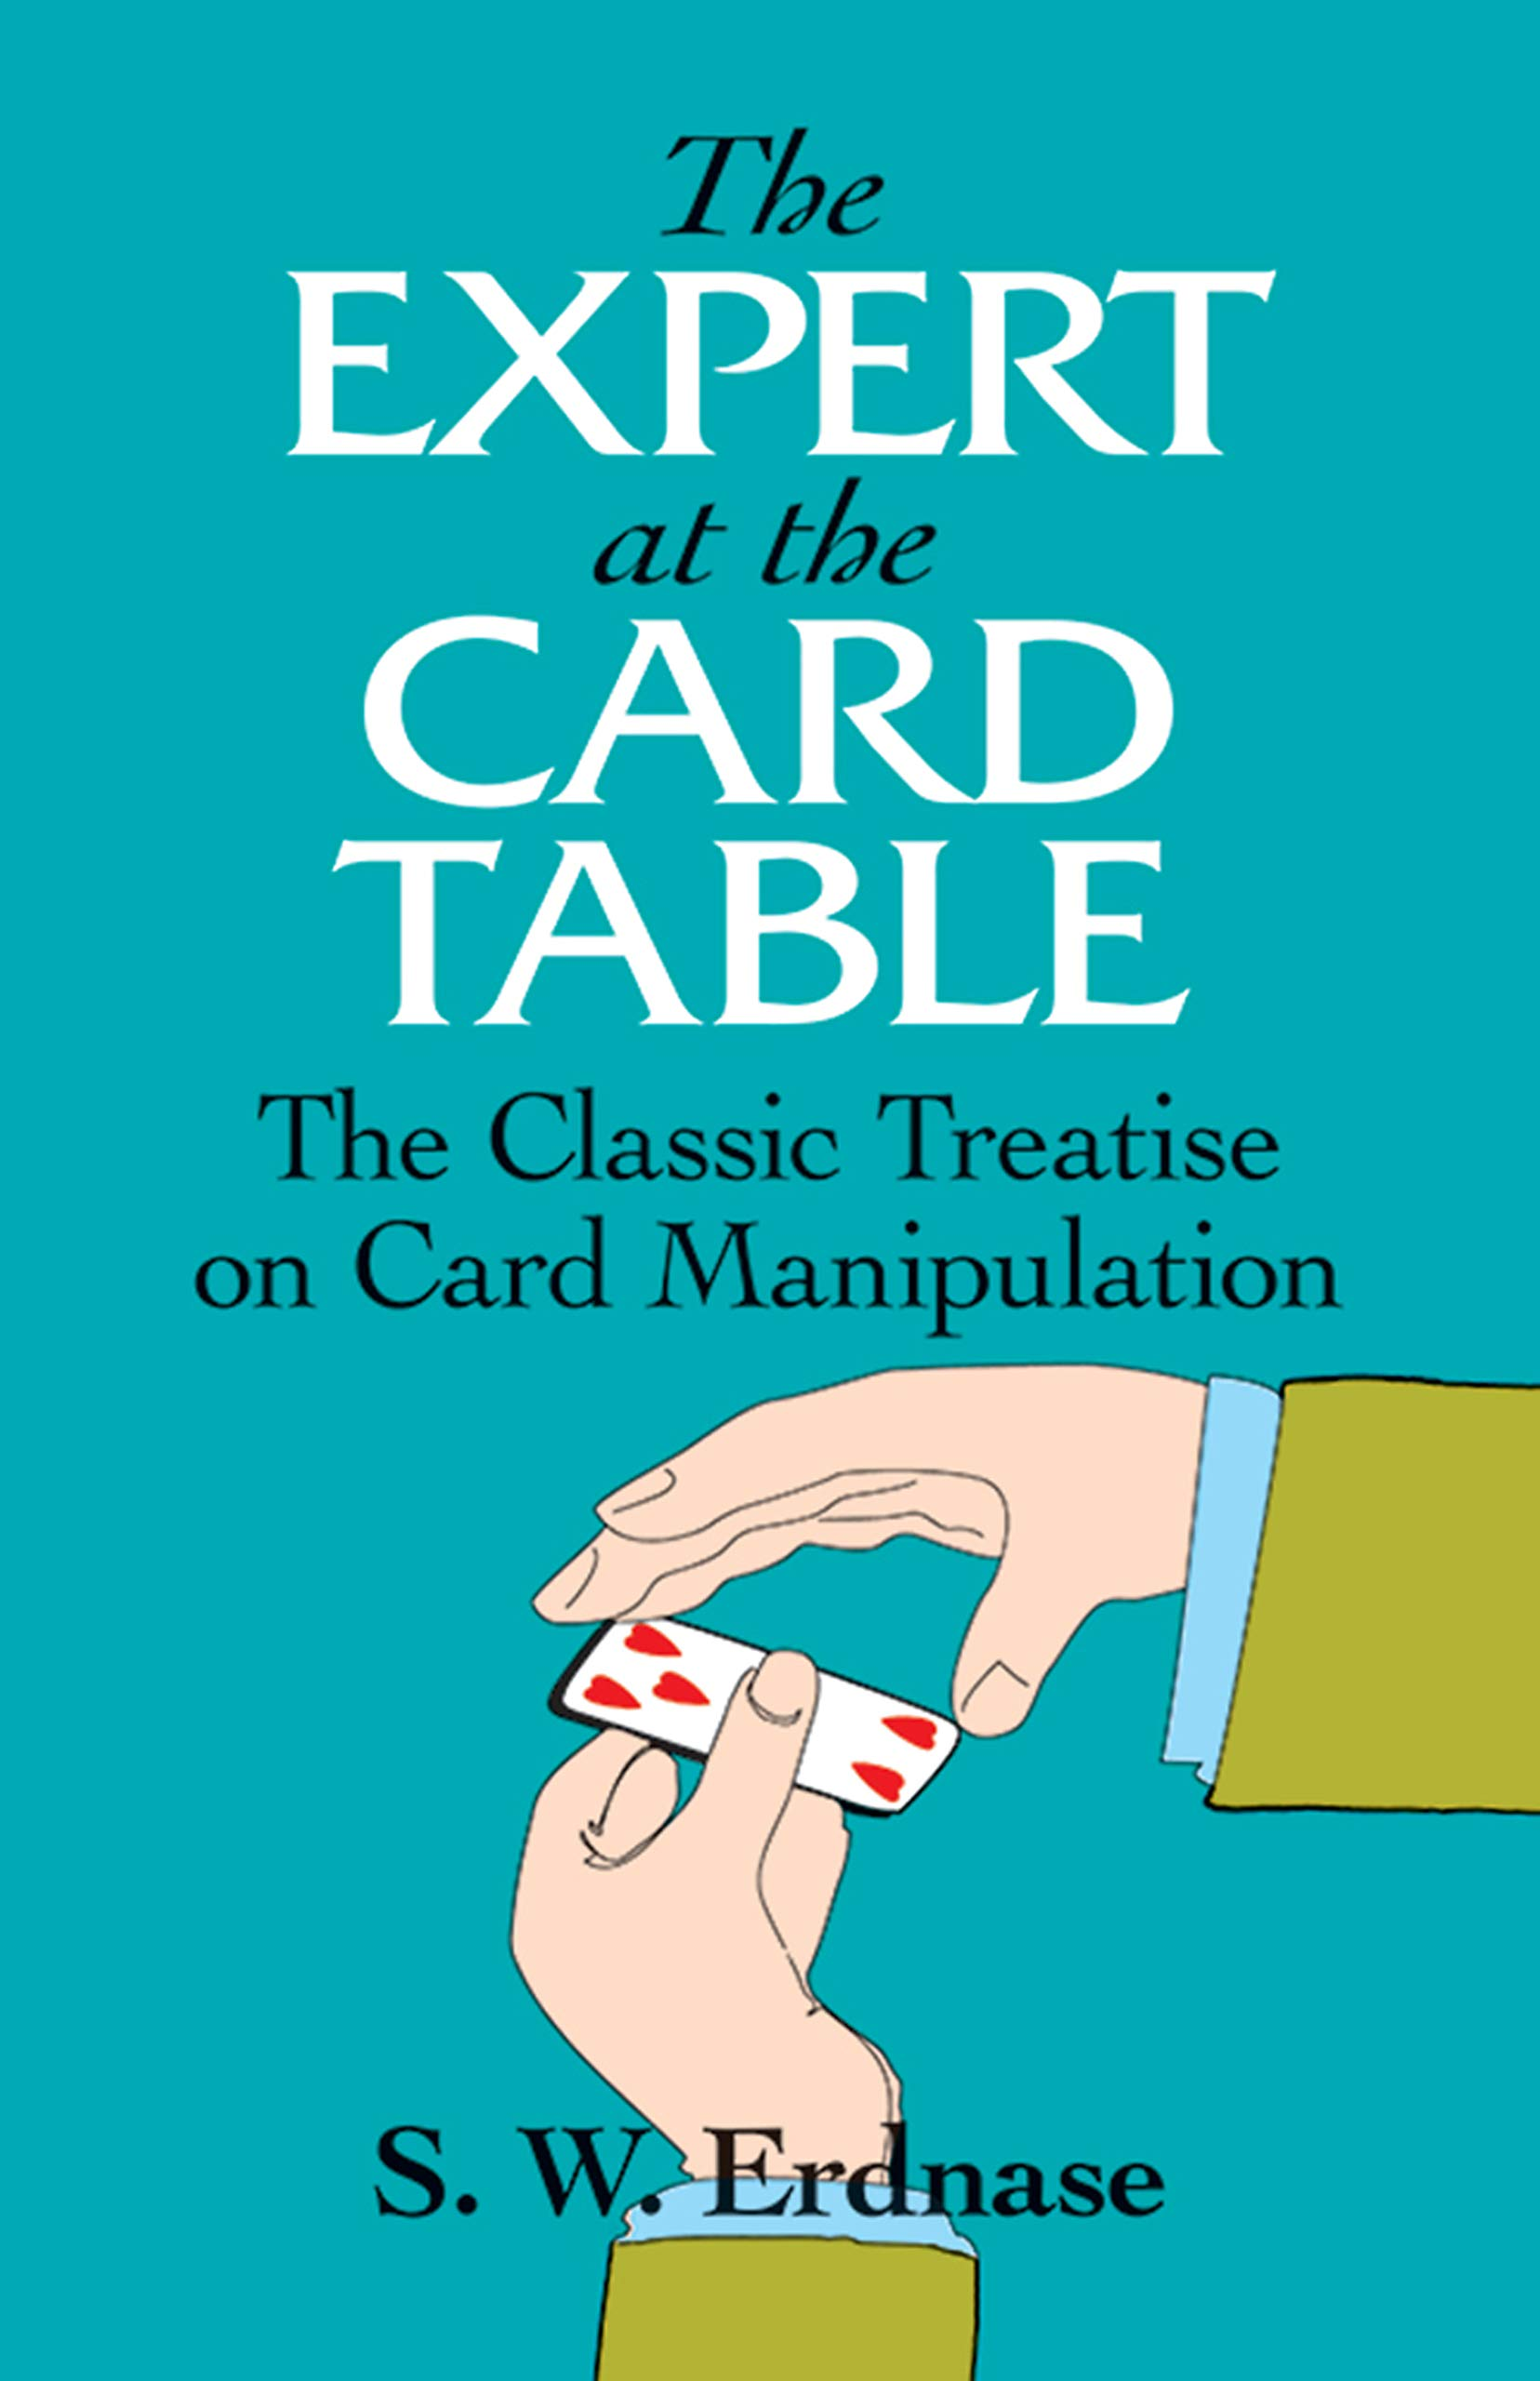 b06c93819e09 The Expert at the Card Table: The Classic Treatise on Card Manipulation:  Amazon.it: S. W. Erdnase: Libri in altre lingue